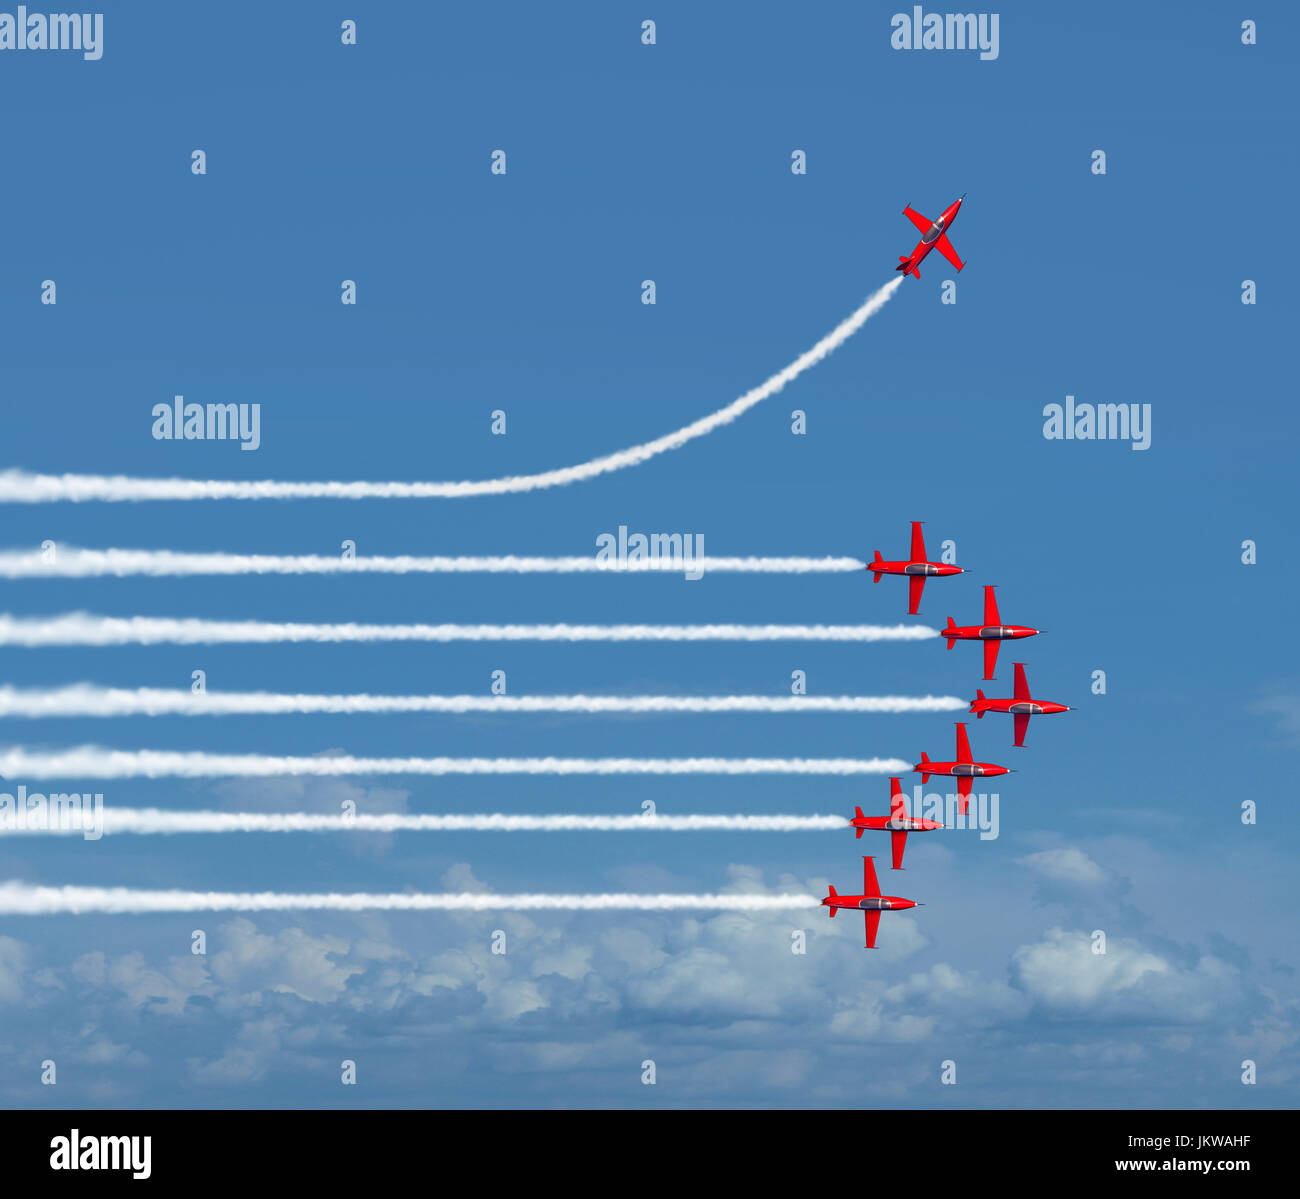 Charting a different path business concept as an independent free thinker idea with air show jet airplanes in an - Stock Image